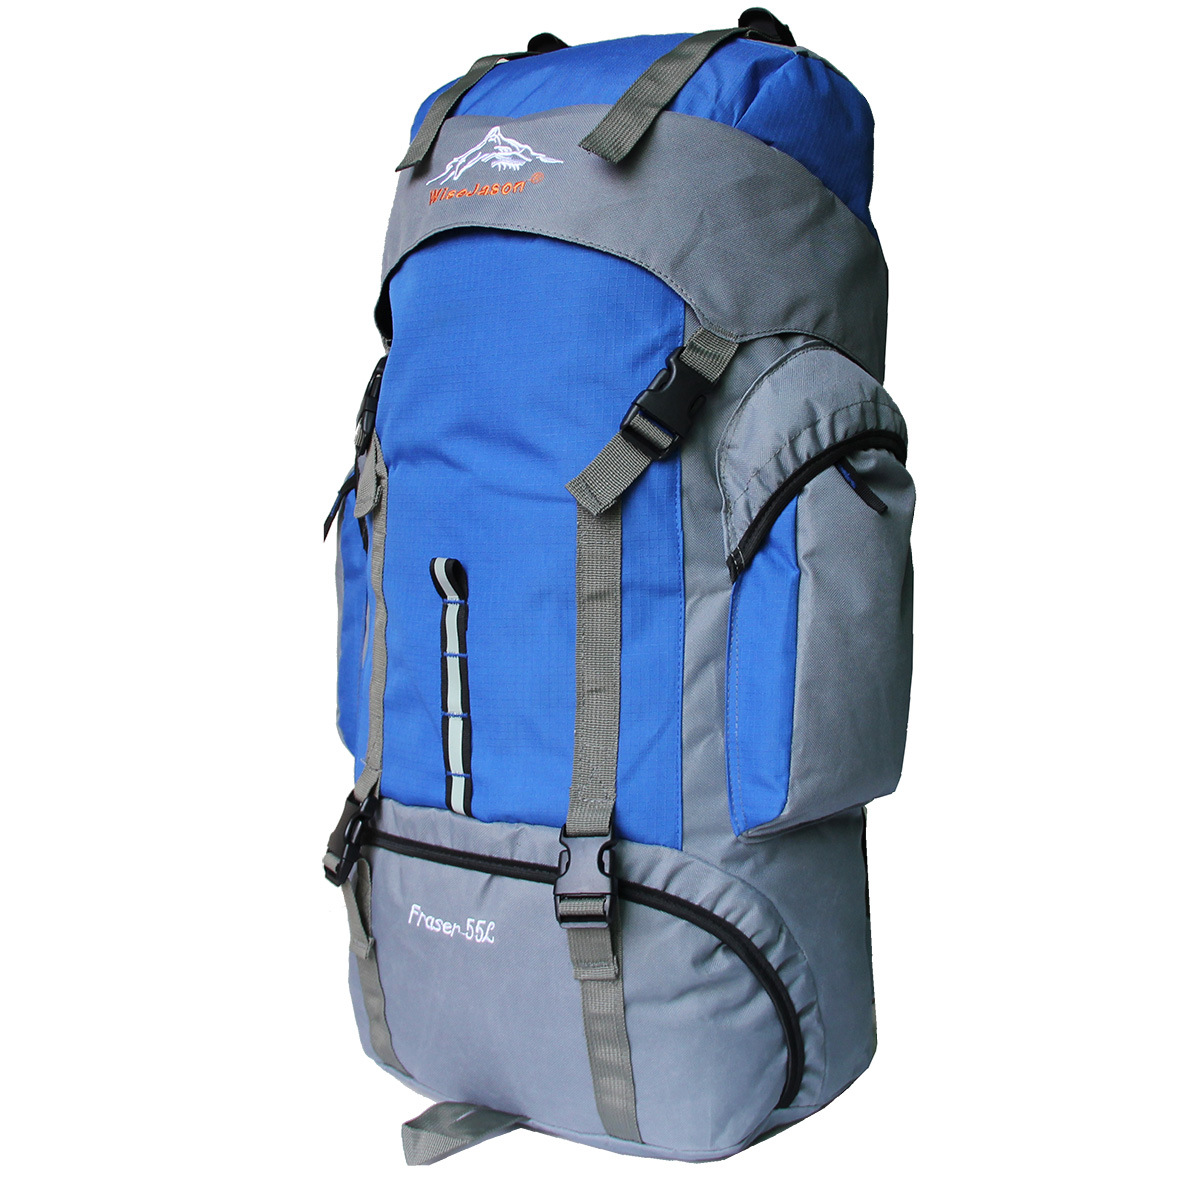 Outdoor Mountaineering Bag 55L Men And Women Hiking Double Back Sports Bag Backpack Oxford Cloth Mountaineering Bag